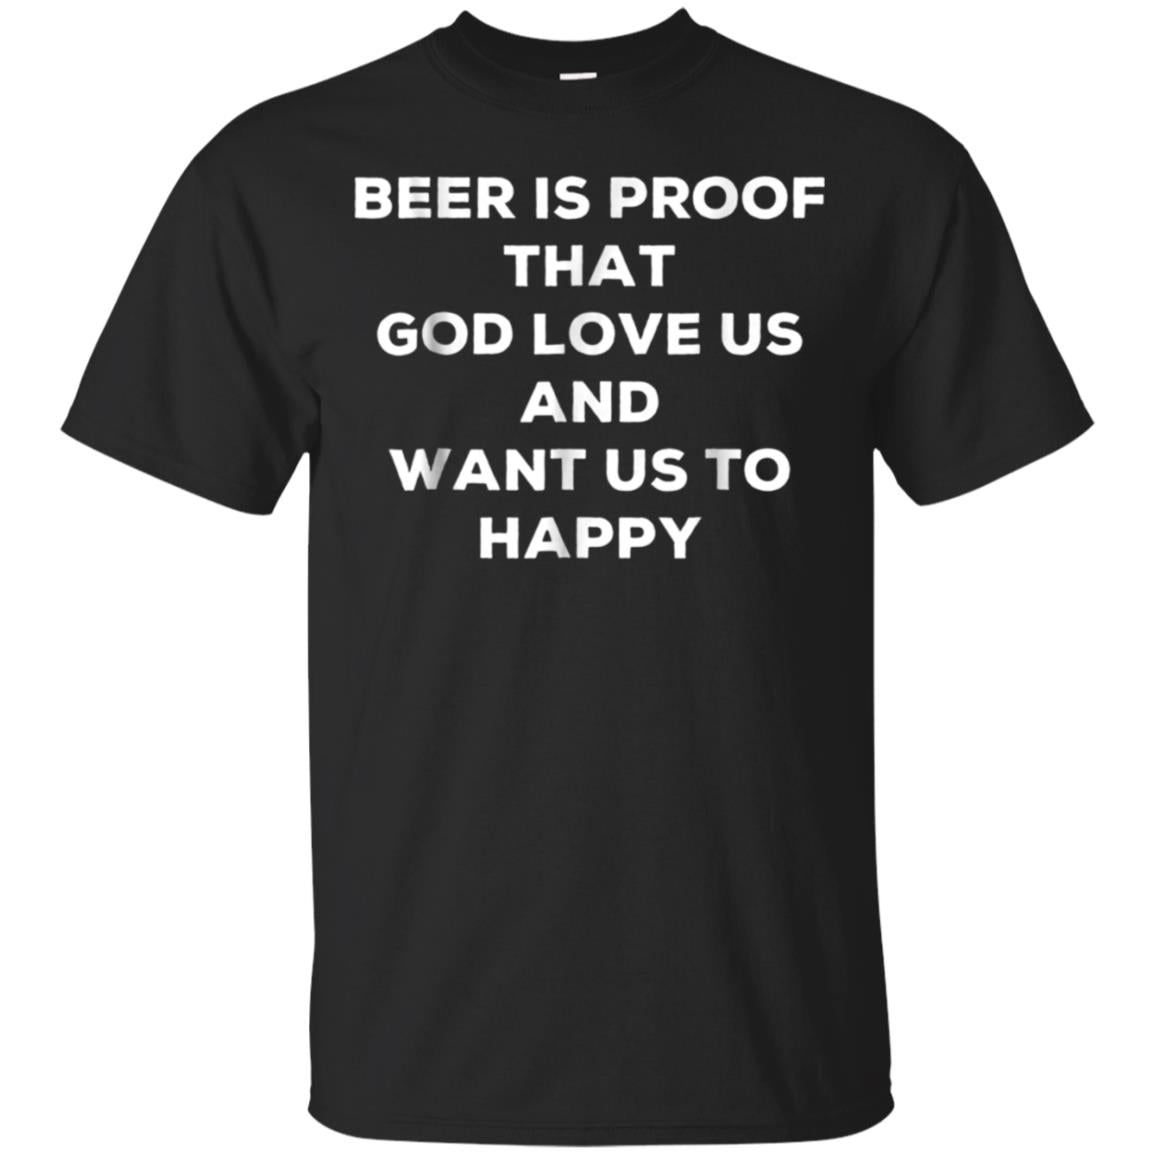 Beer is proof that God loves us and wants us to be happy t s 99promocode